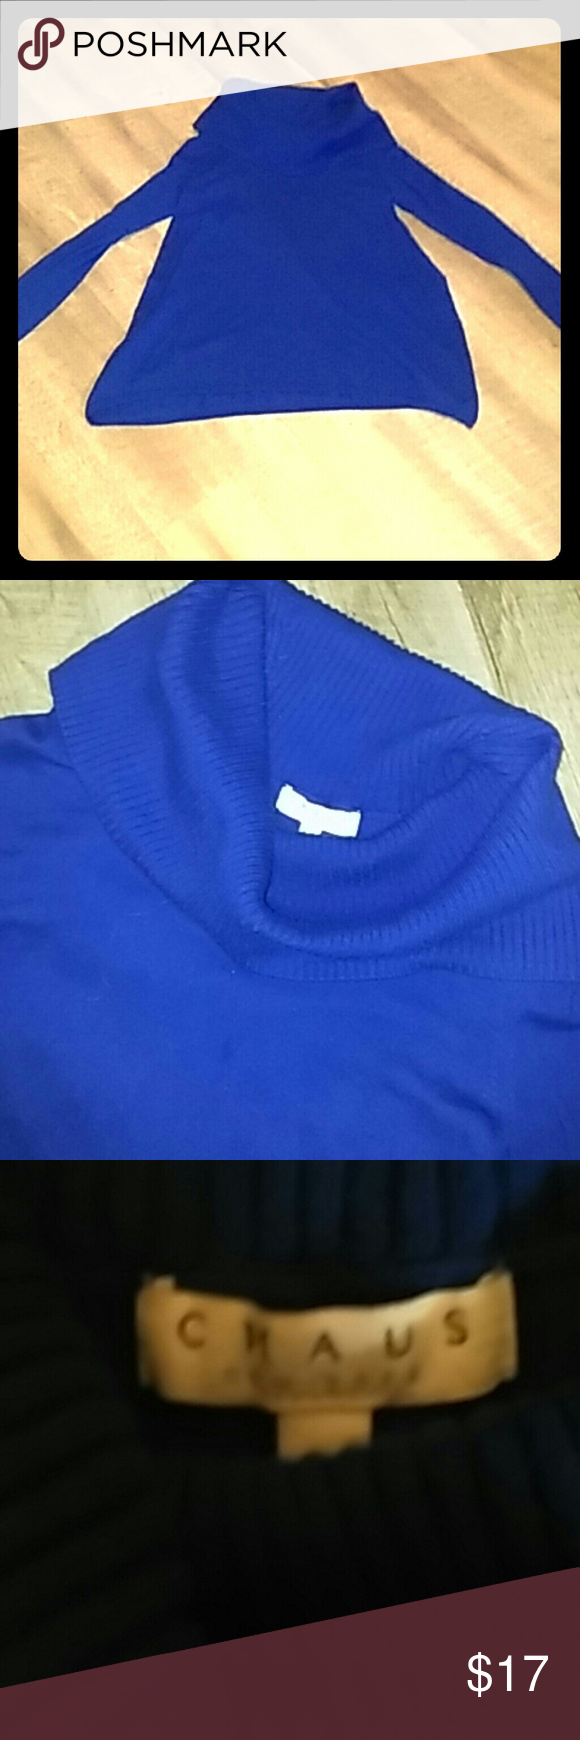 Chaus New York cow neck sweater | Cow, Cowl neck and Royal blue